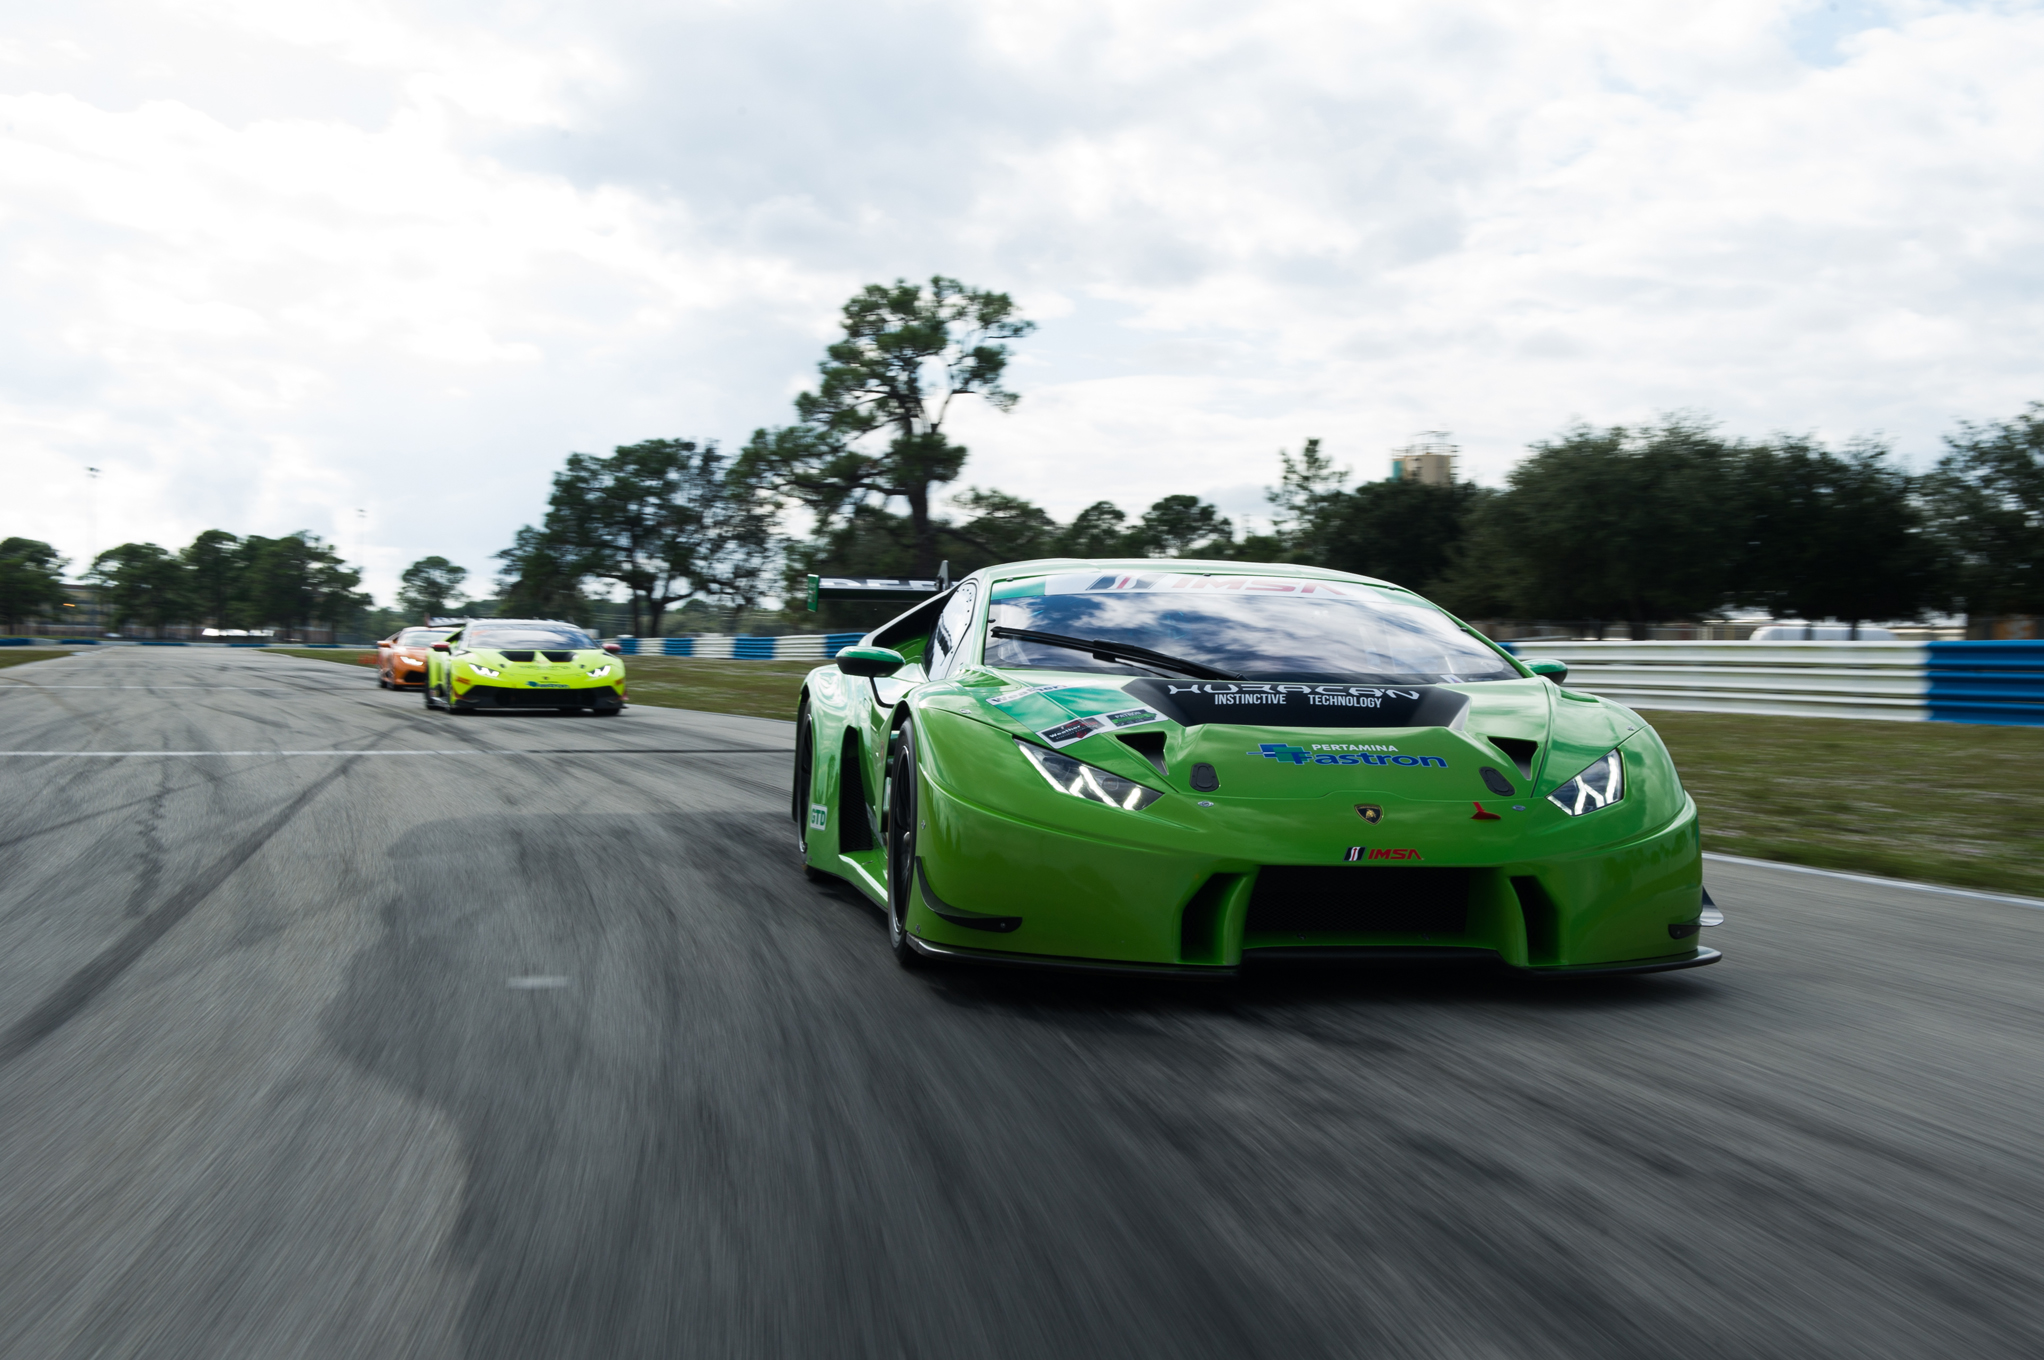 2019 Lamborghini Huracan GT3 Racecar | Car Photos Catalog 2018